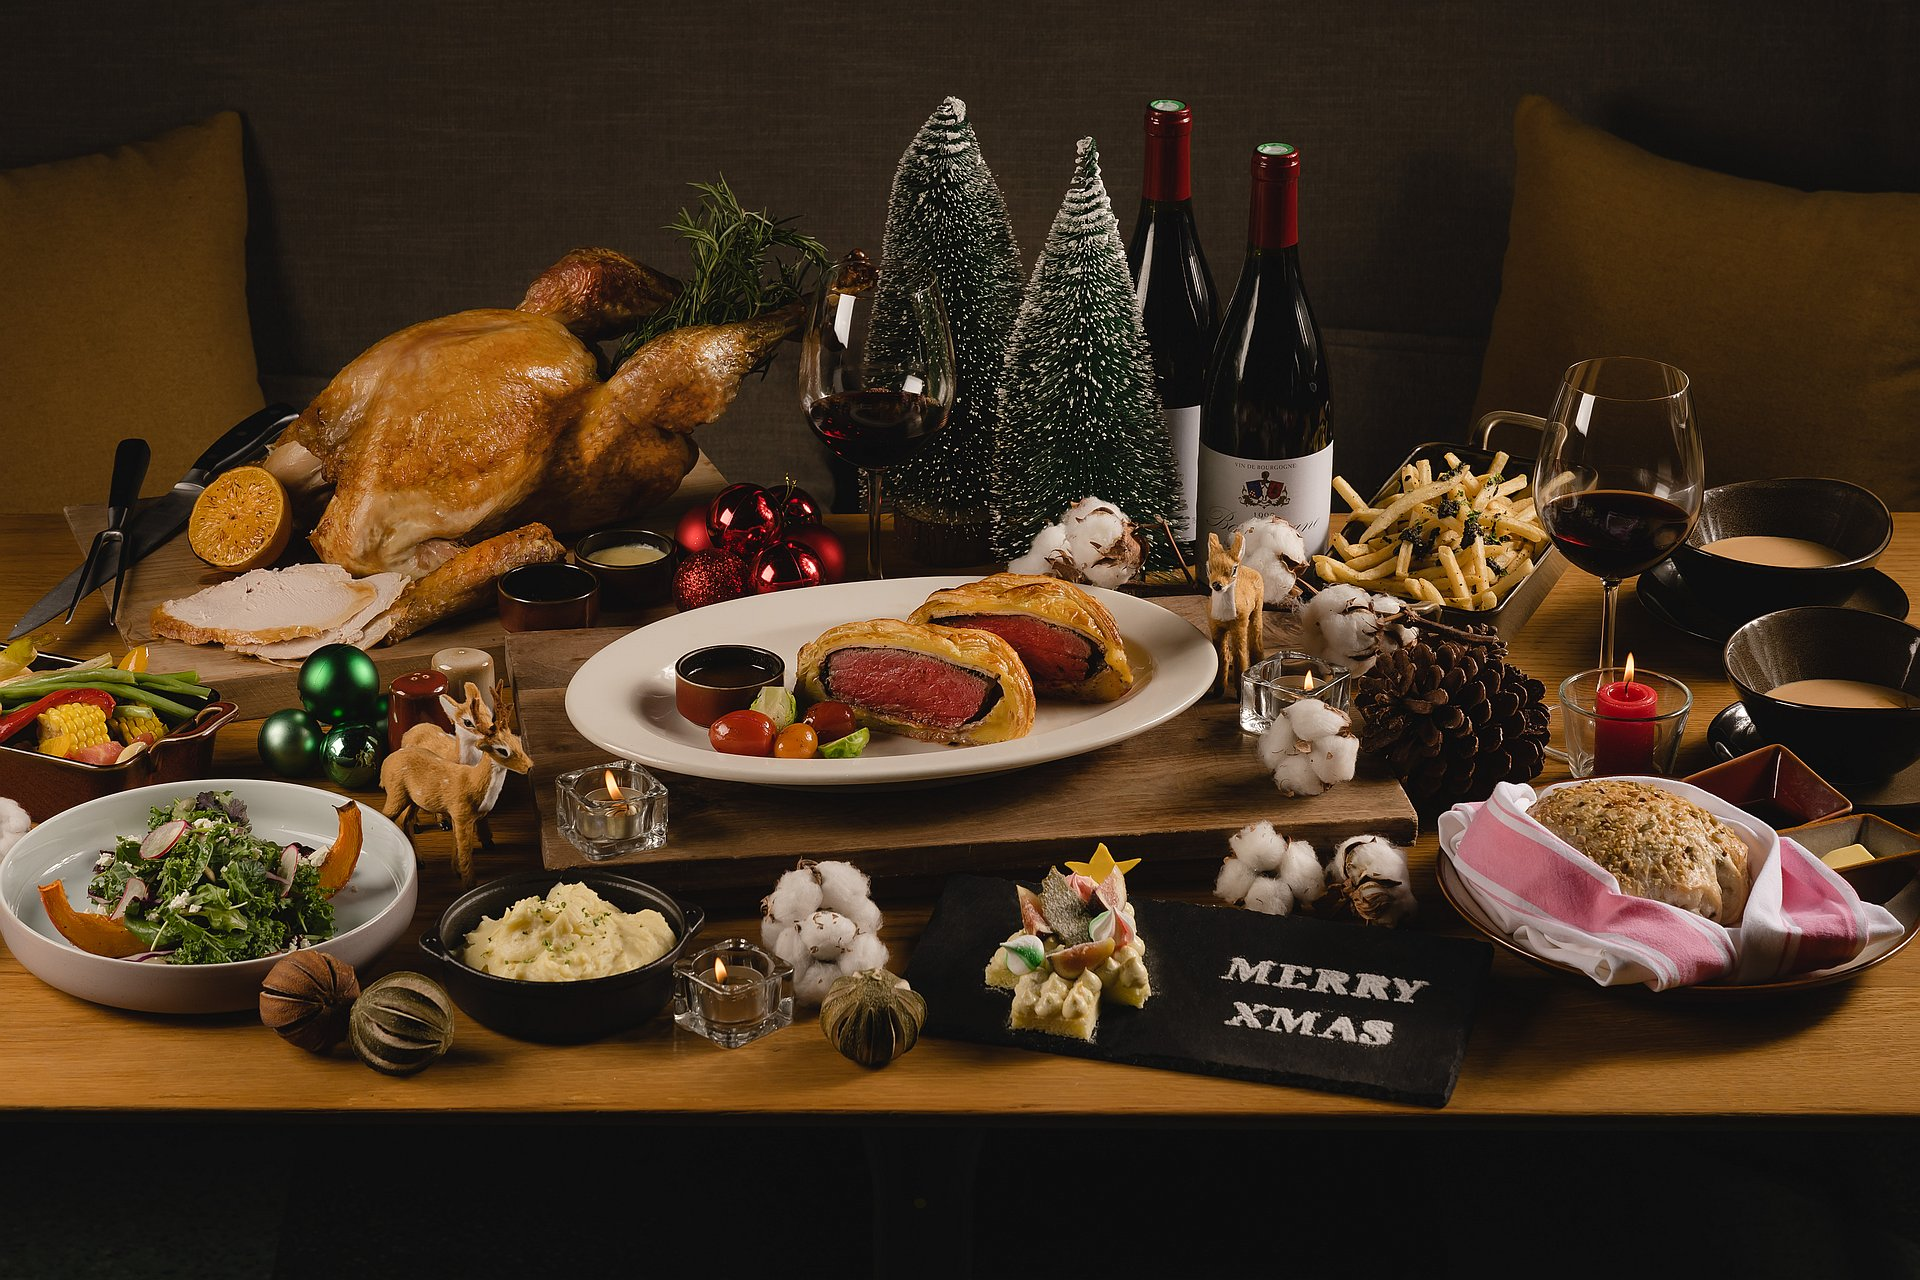 amba Taipei Songshan hotel Que woodfired grill 2020 winter wonderland christmas dinner